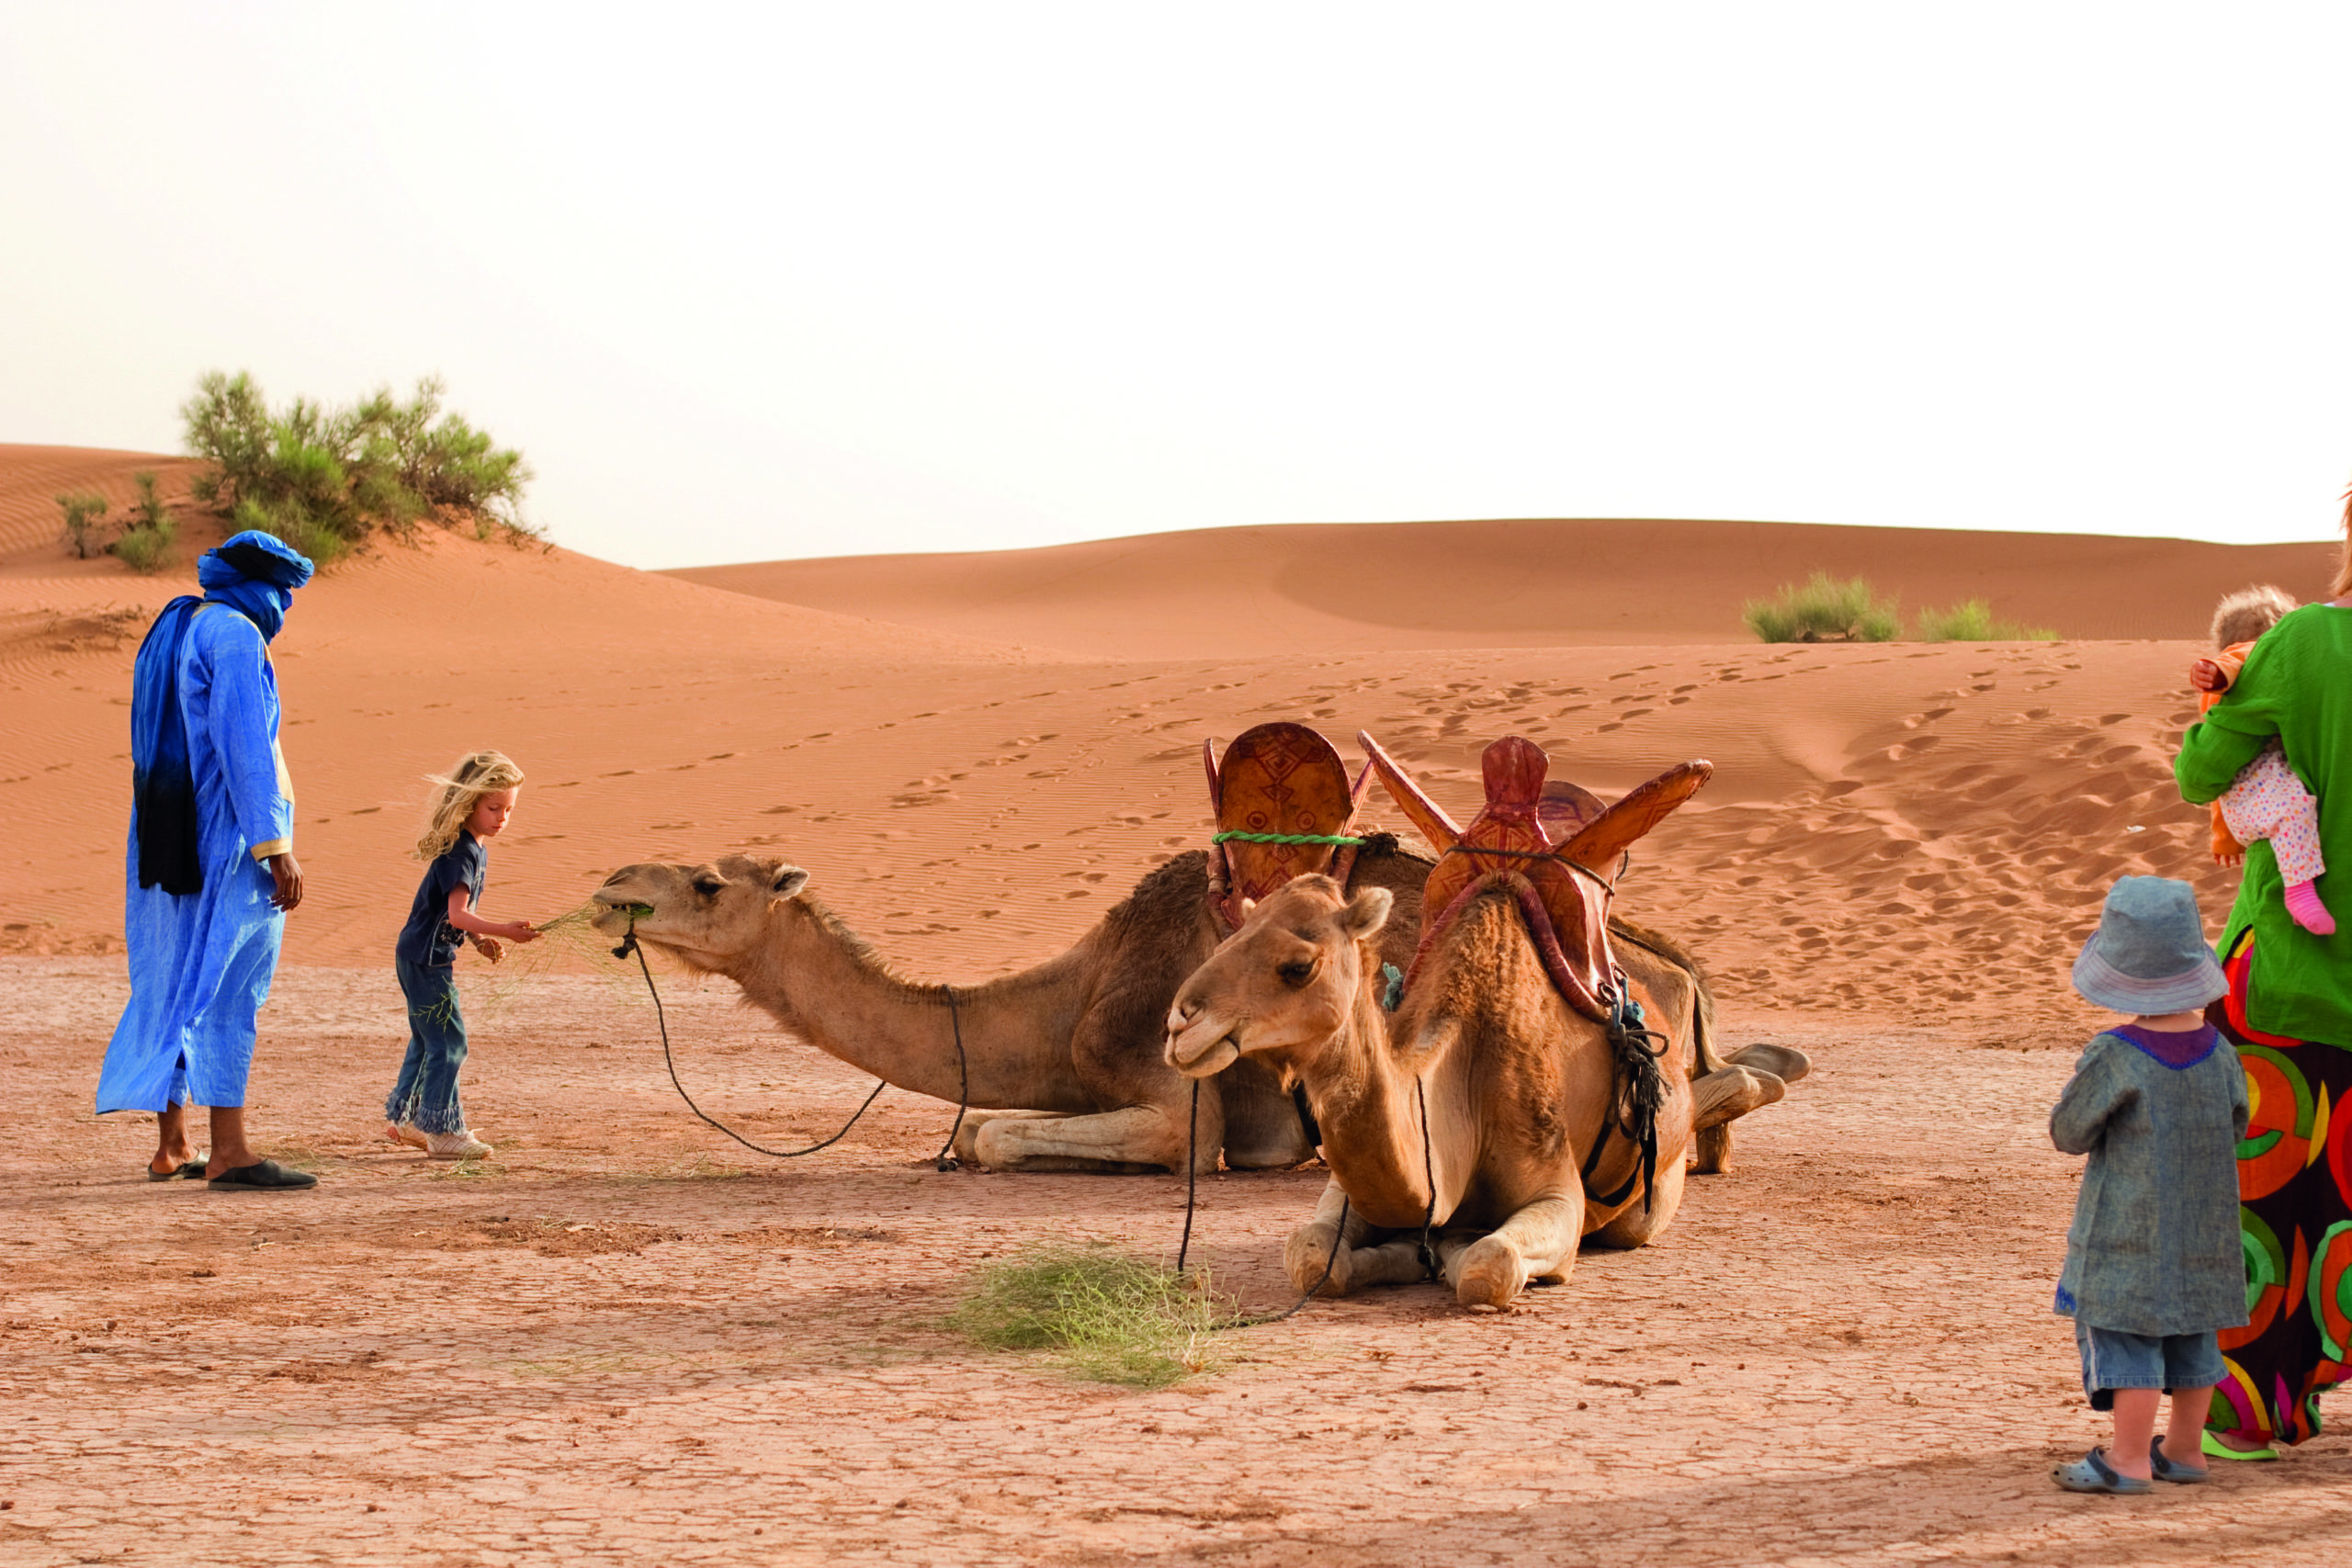 Children with the camels before mounting